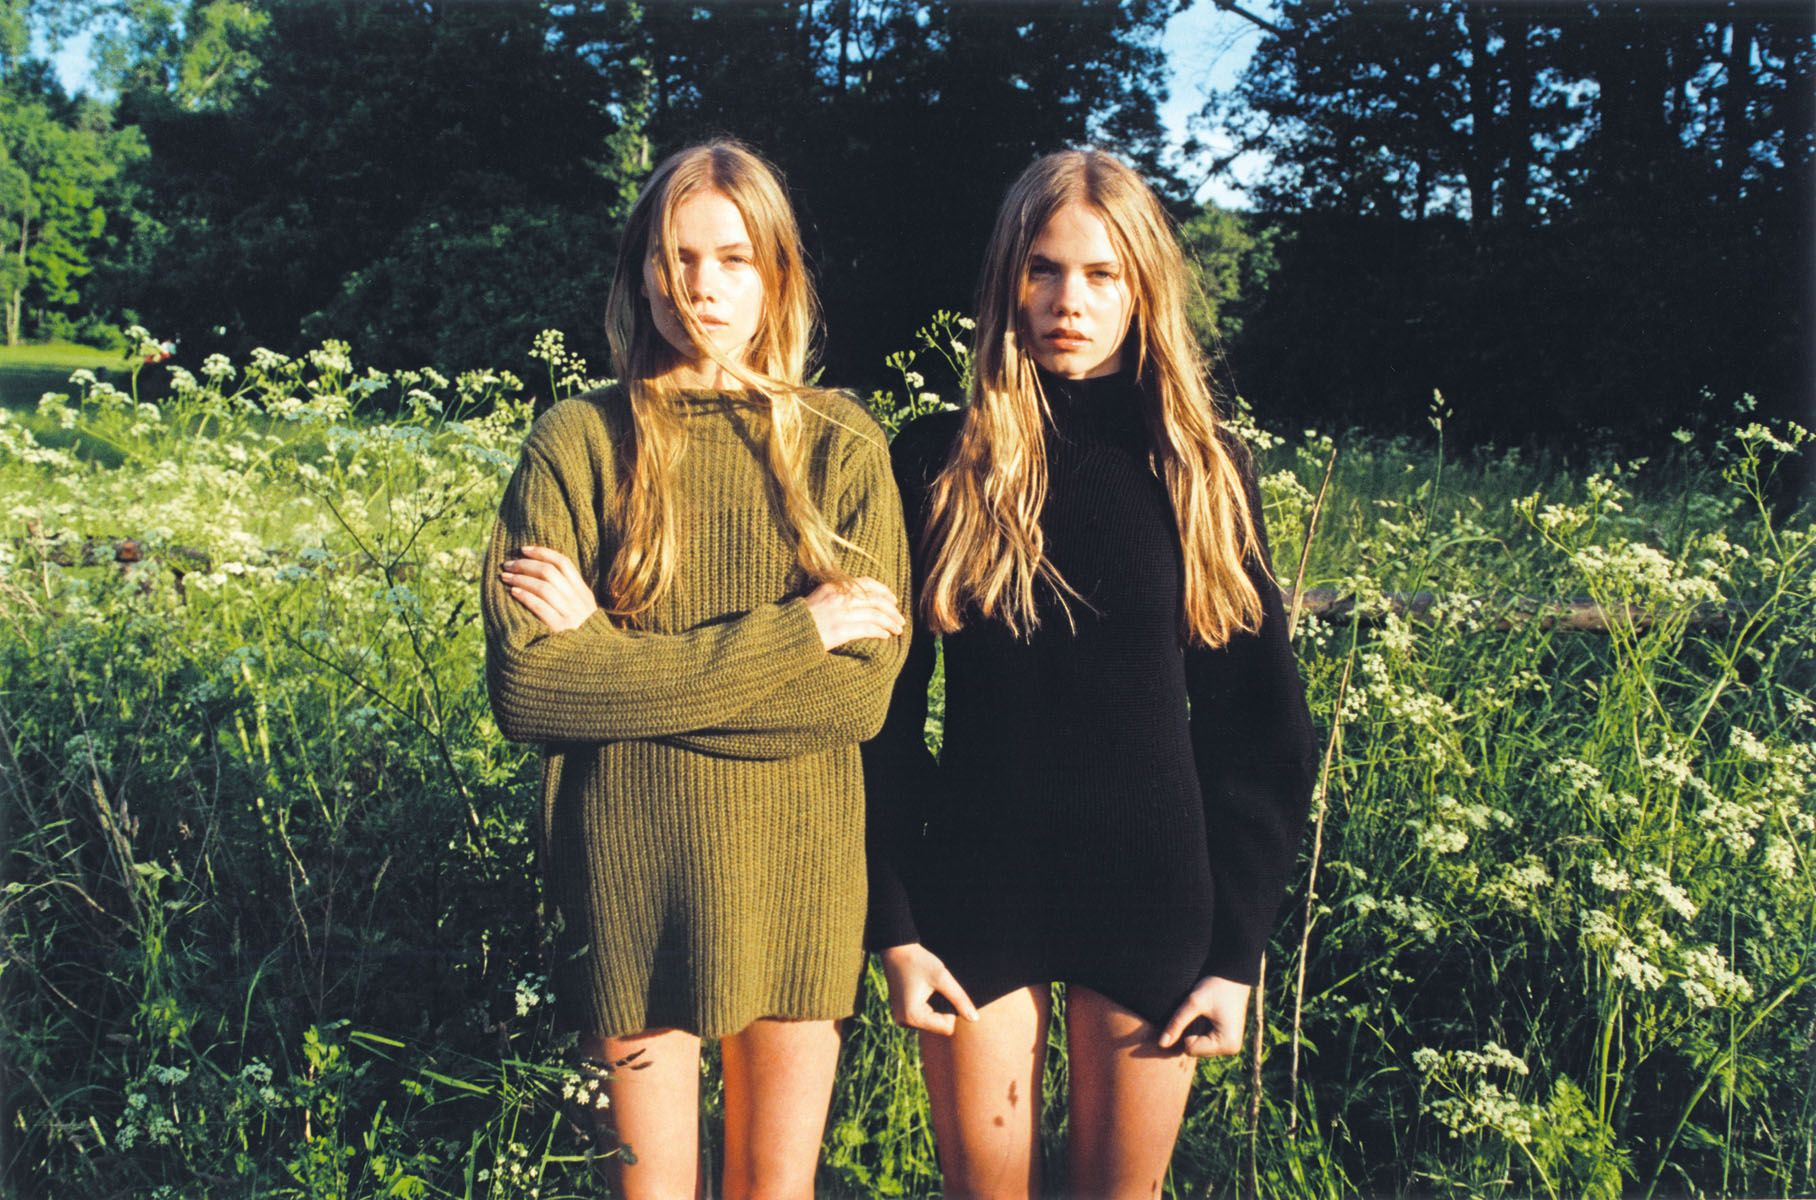 ZEIT Magazine – July 4th 2013  *  editorial: Naturschonheiten  models: twin sisters Inka Hoeper & Neele Hoeper  *  photographer: Lina Scheynius